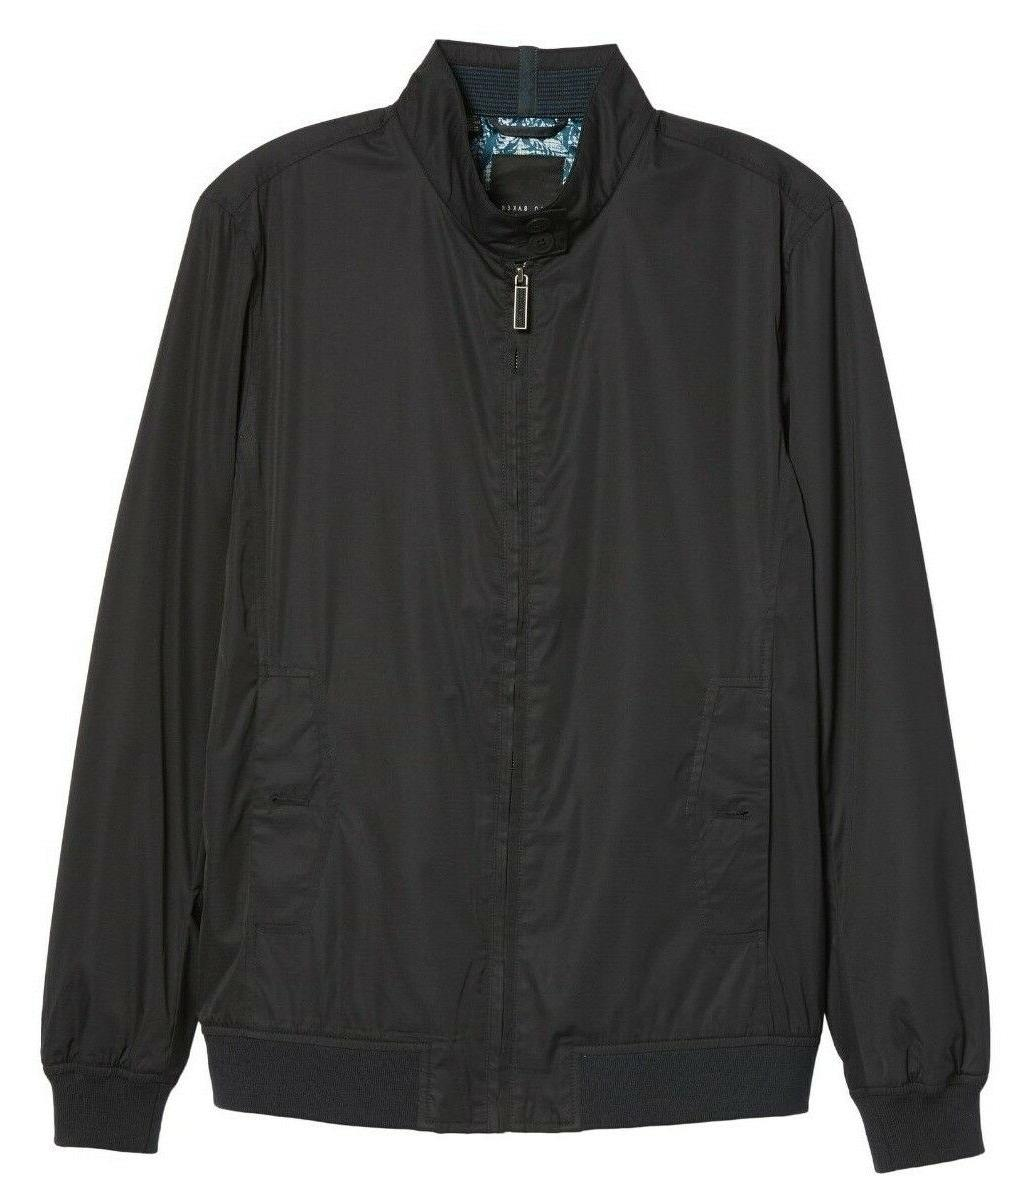 Ted Baker Men's Black Calgar Nylon Bomber Full Zip Jacket